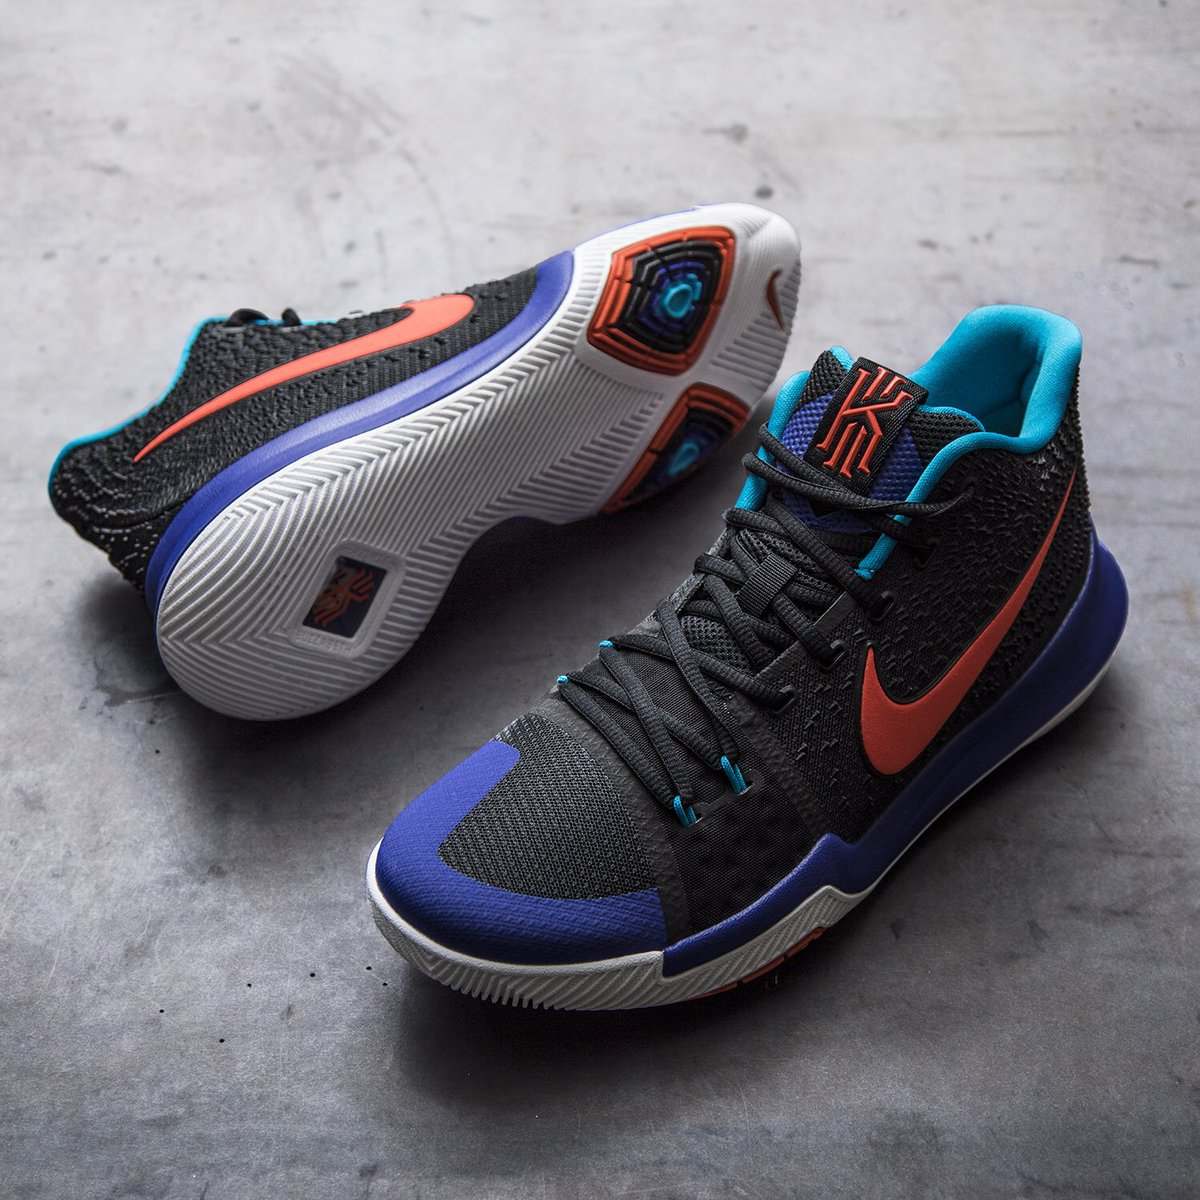 b19f173d0fba sale jimmy jazz on twitter inspired by the air huarache light. the nike  kyrie 3 ...